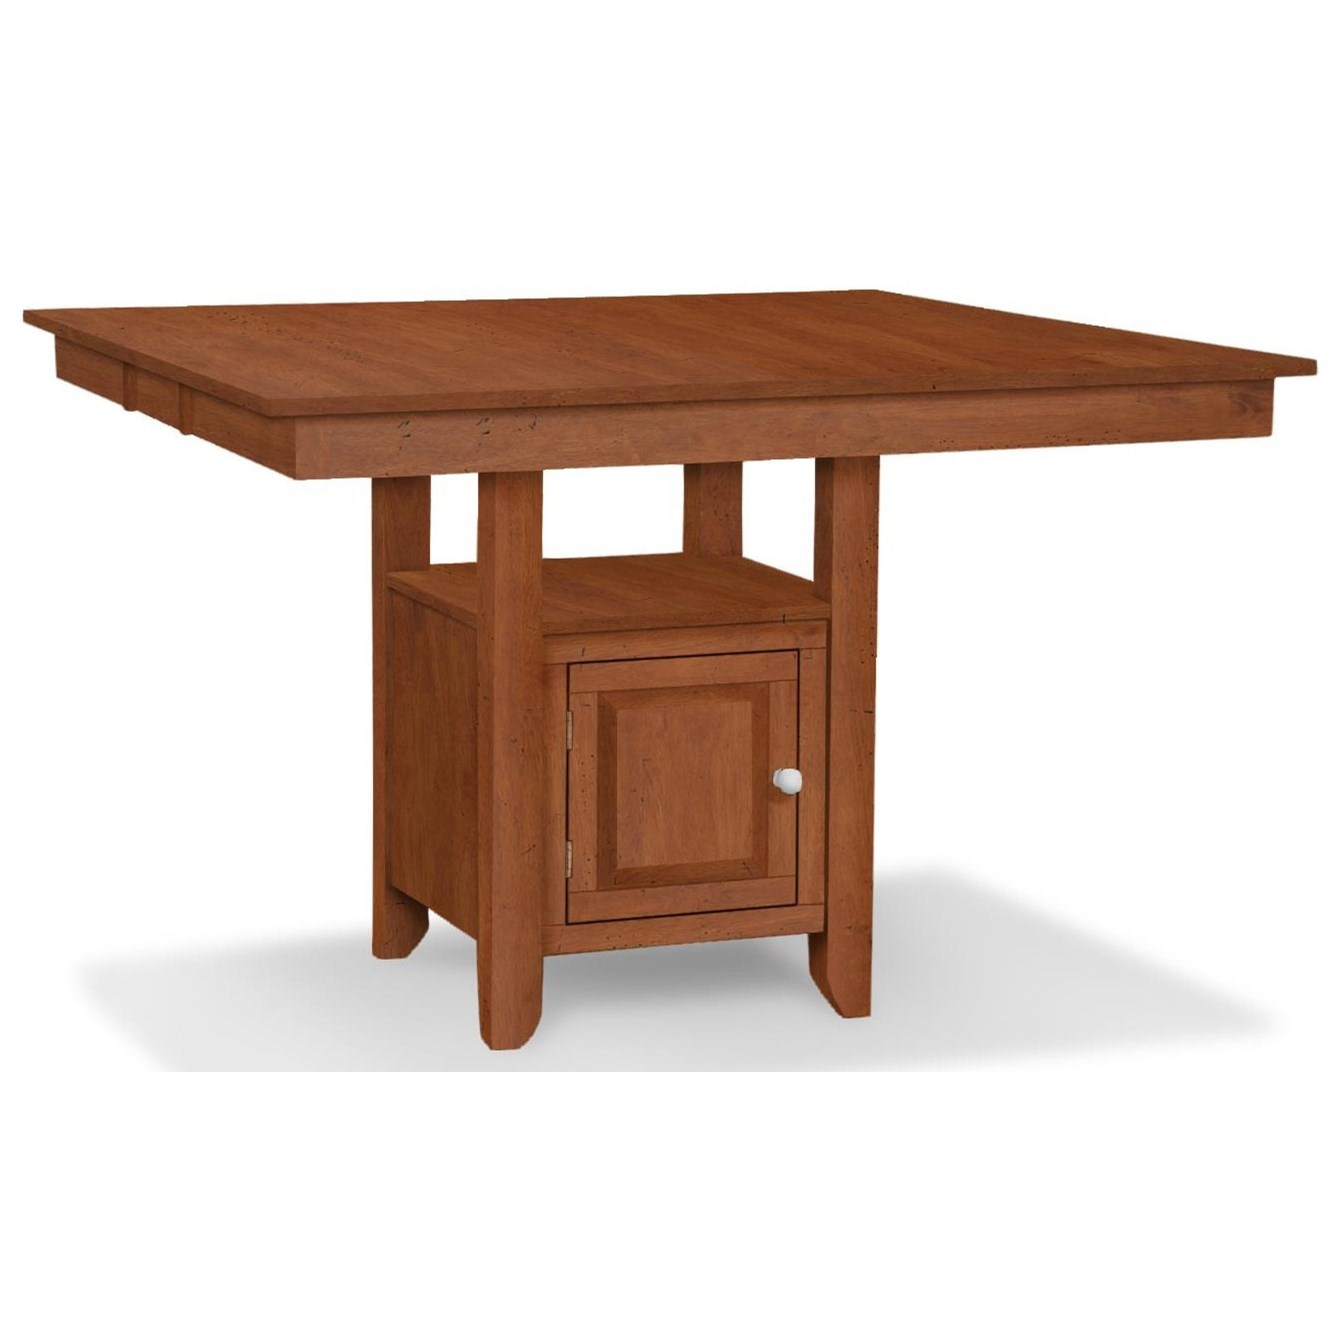 SELECT Dining Gathering Height Table with Pedestal Storage by John Thomas at Baer's Furniture